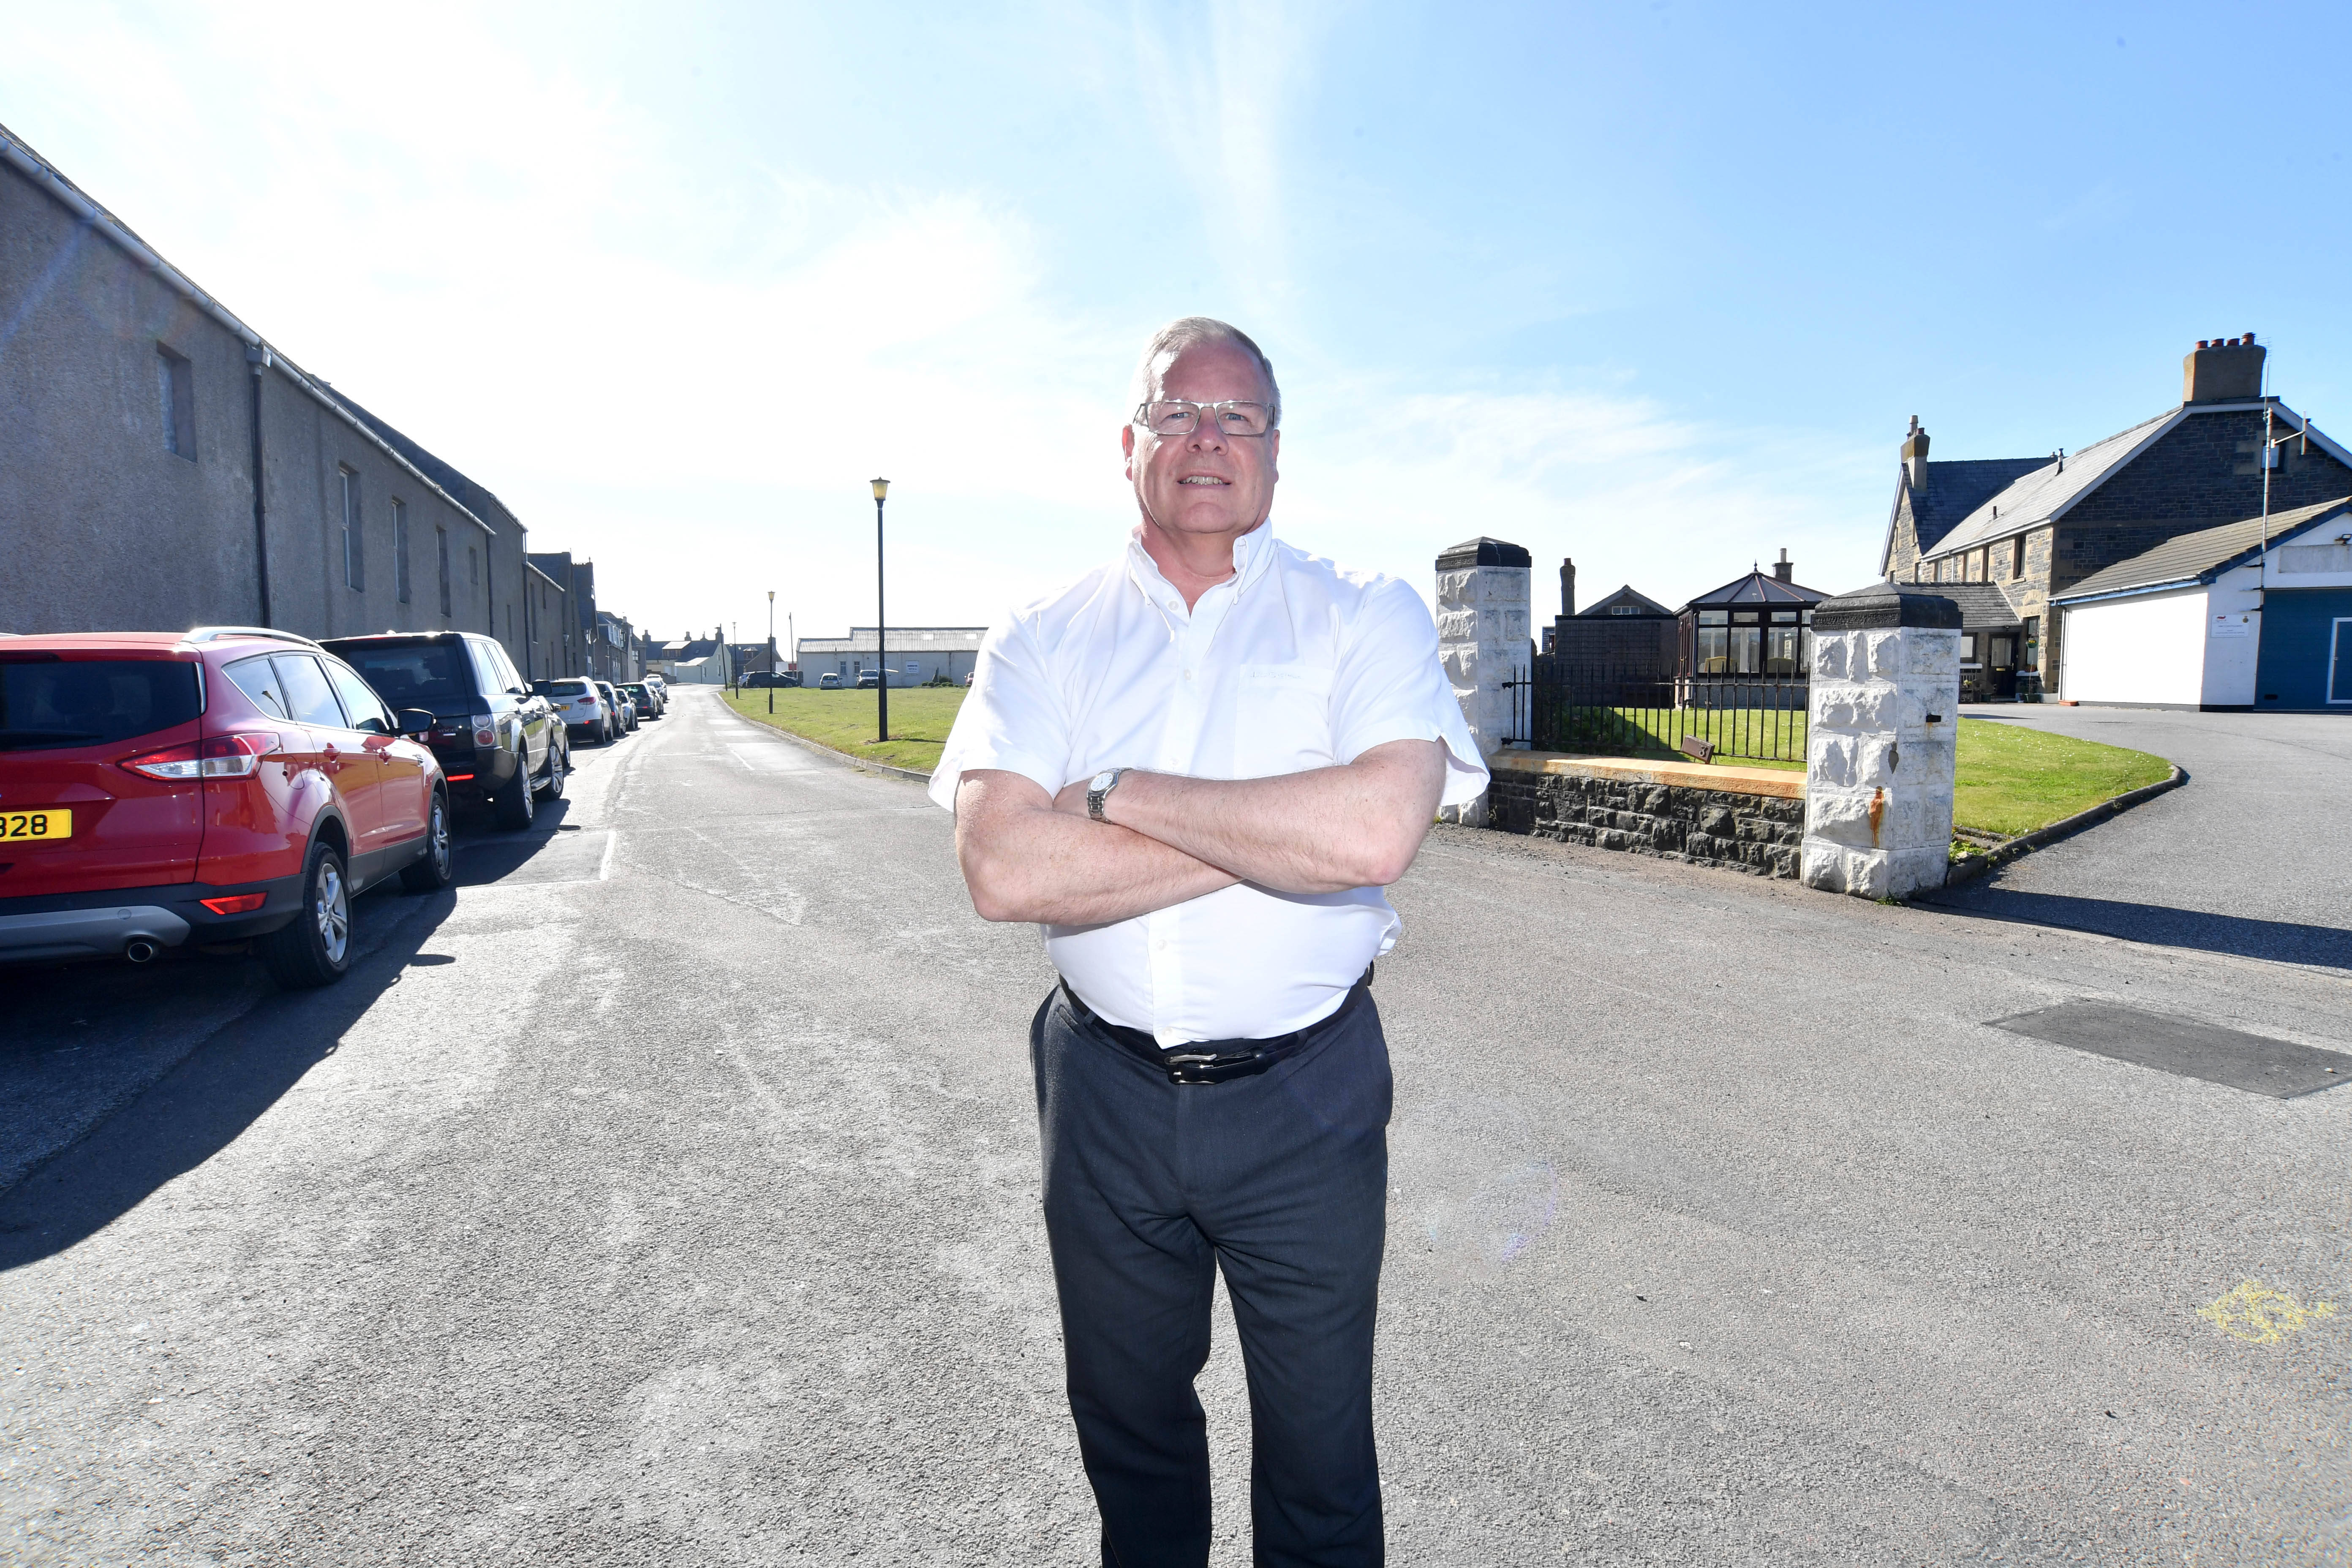 Councillor john cox outside the coastguard station at Battery Green, Banff where parking has been causing problems for emergency services.